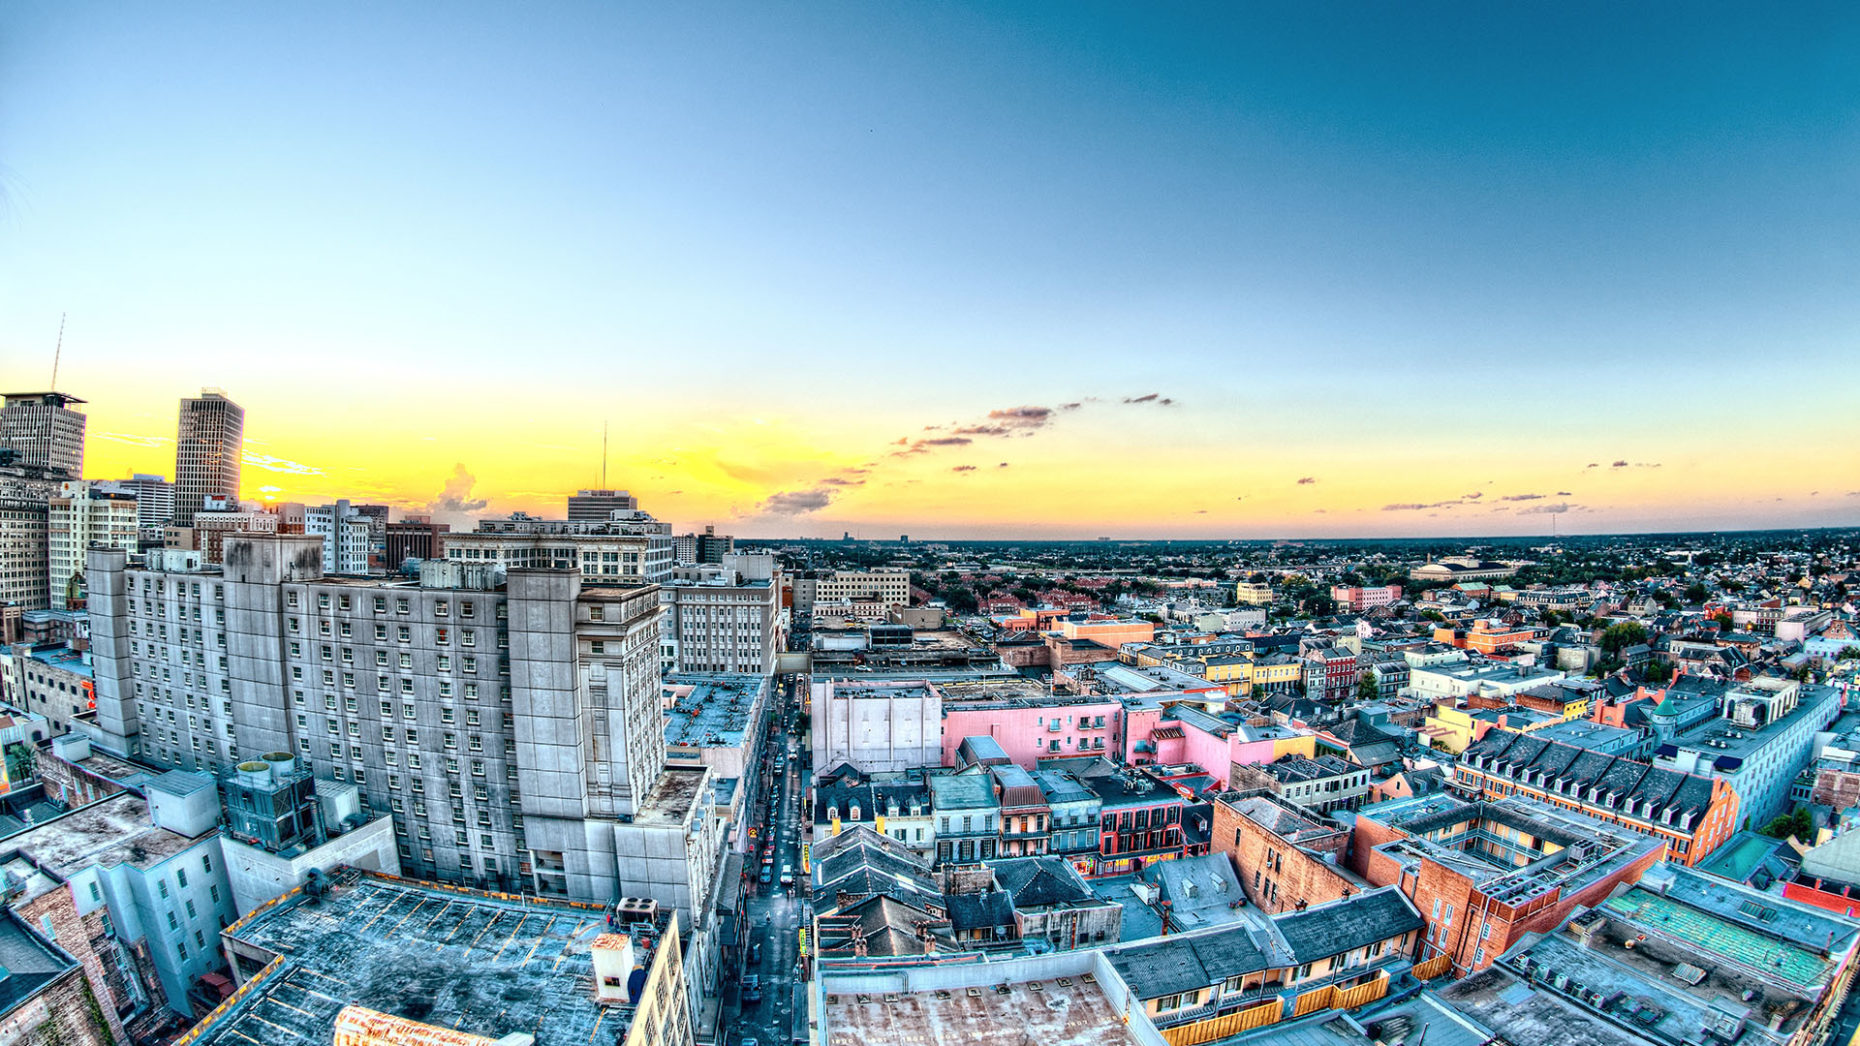 Download Colorful New Orleans Wallpaper 19201080 A